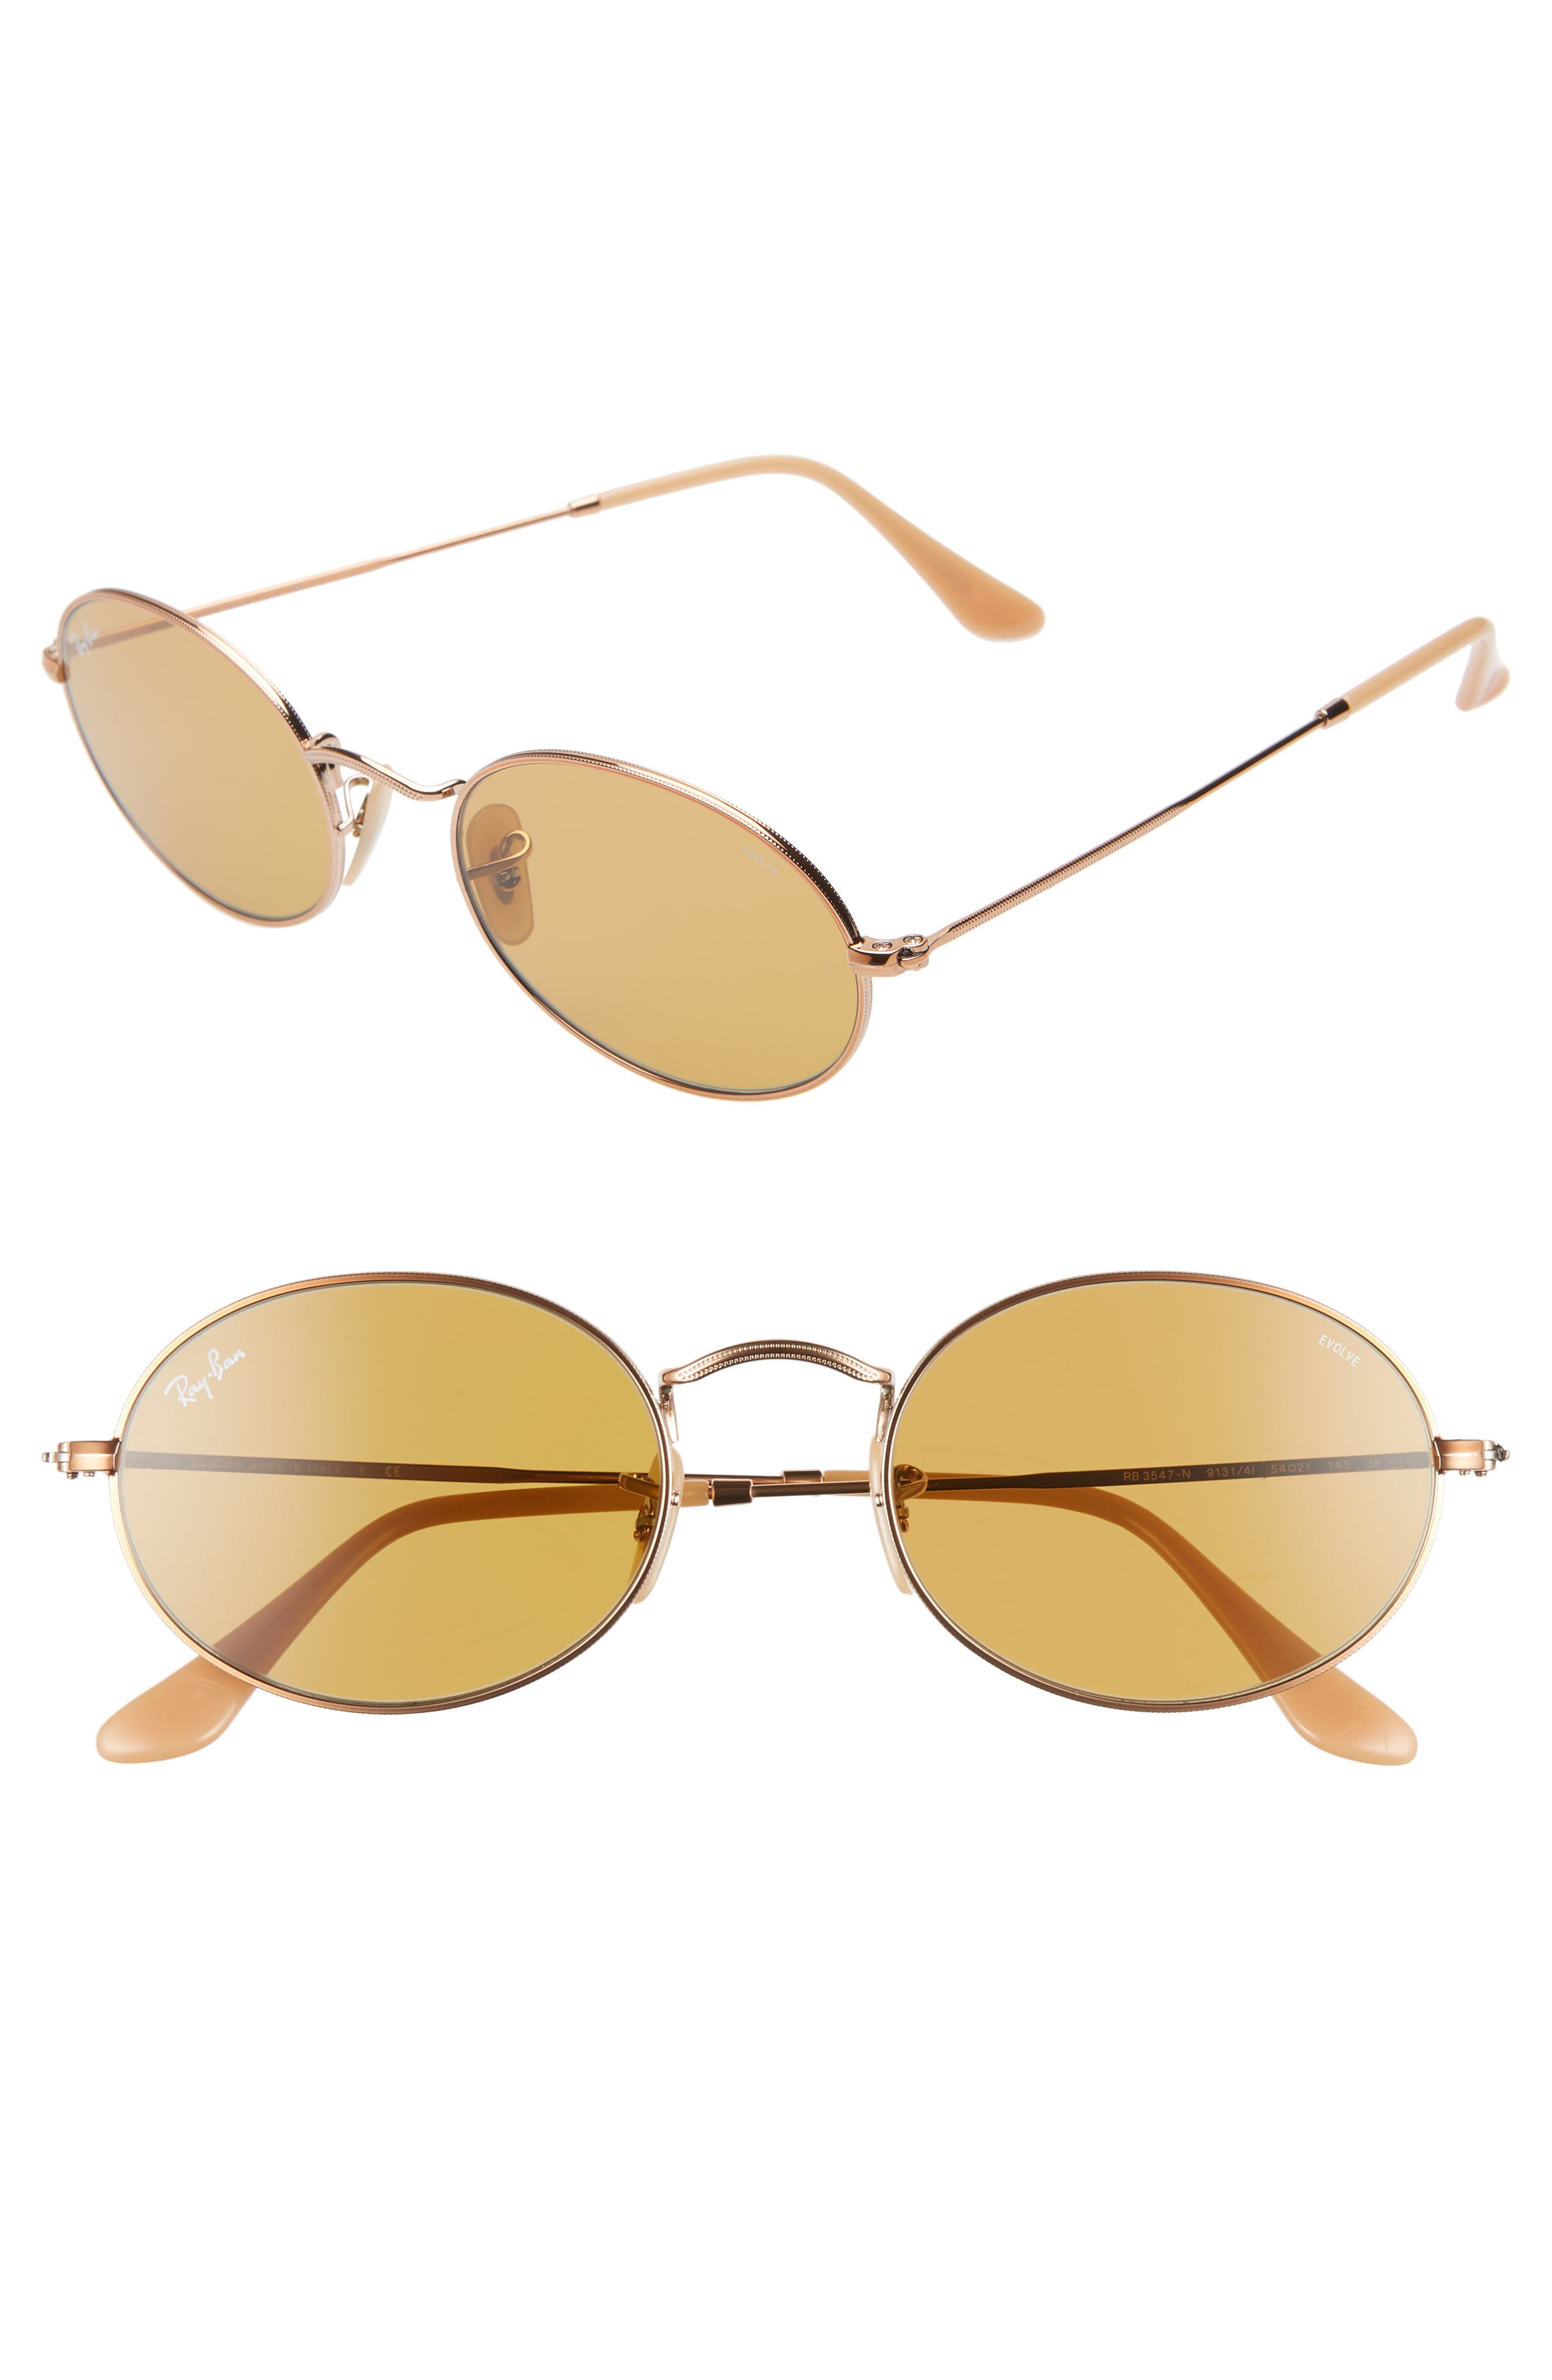 RAY-BAN Evolve 54mm Polarized Oval Sunglasses, Main, color, GOLD/ COPPER SOLID